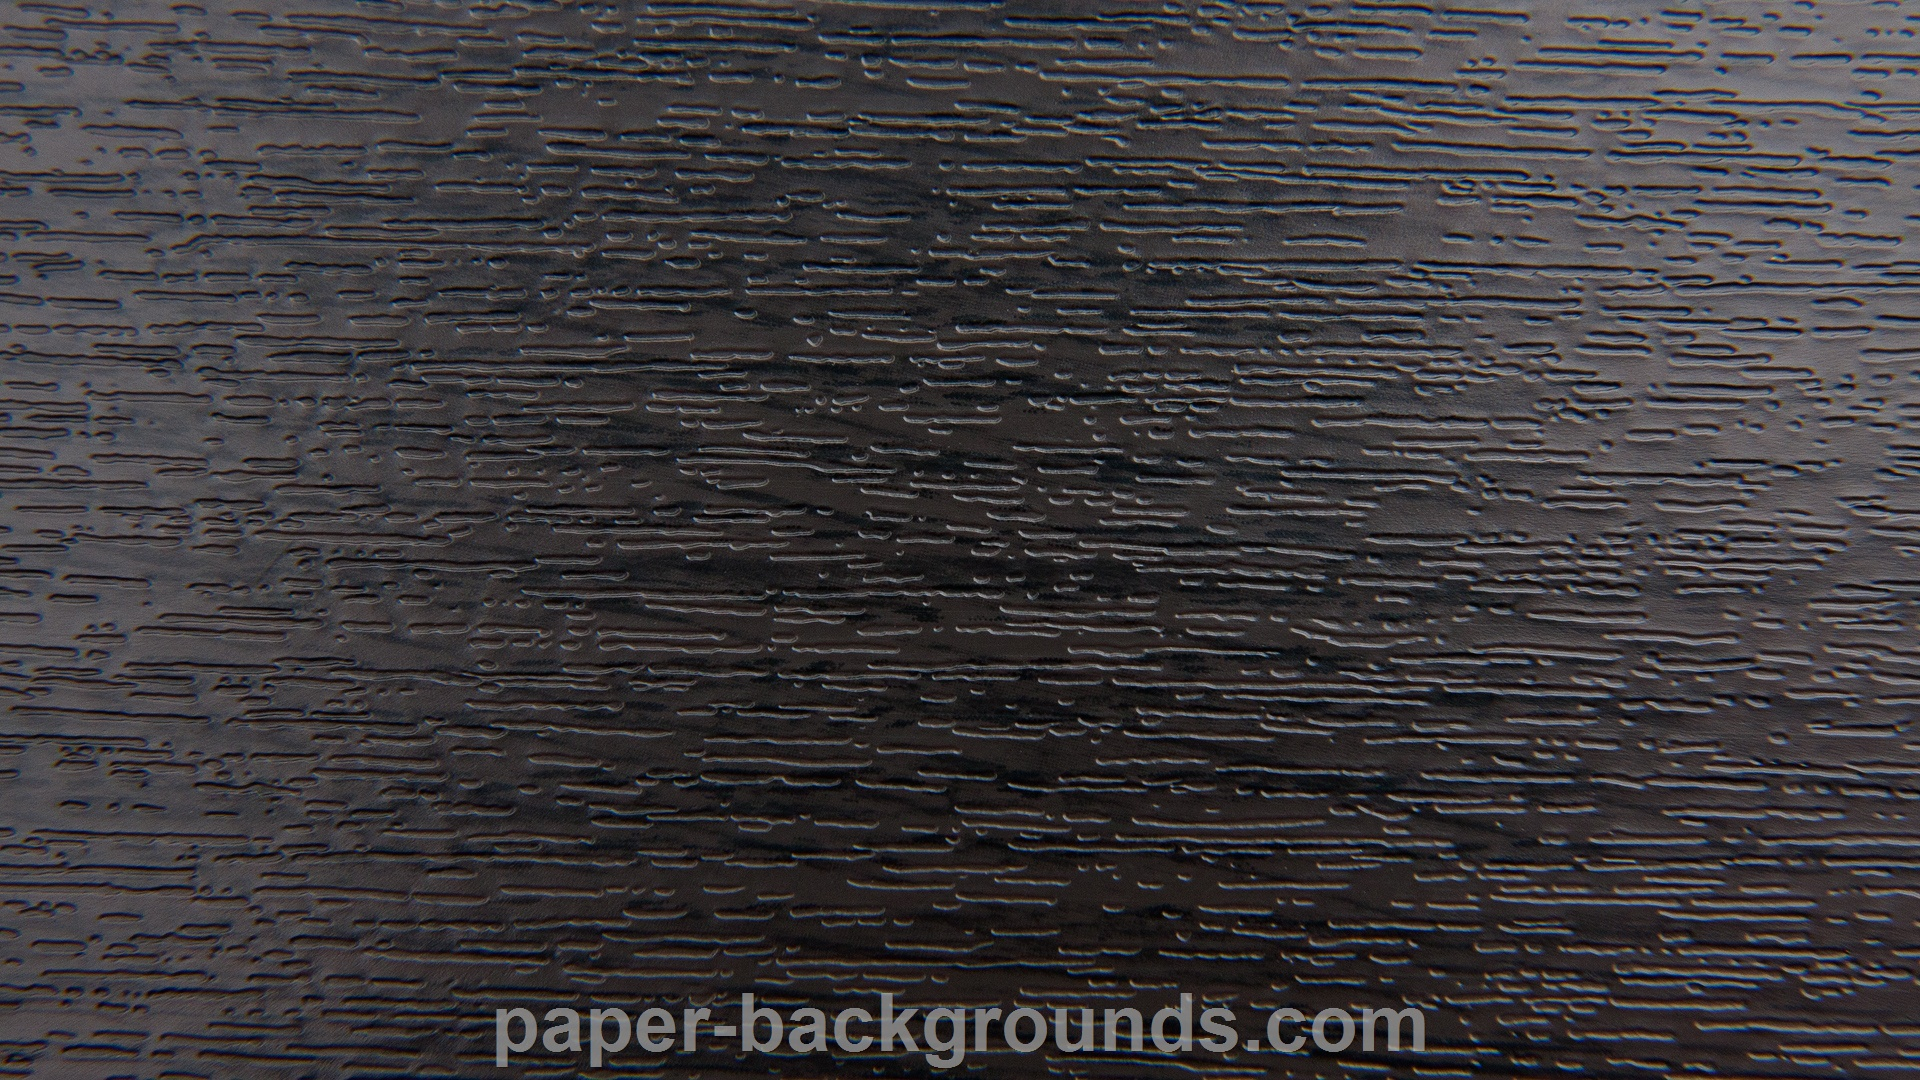 Dark Brown Textured Wood Furniture Background HD